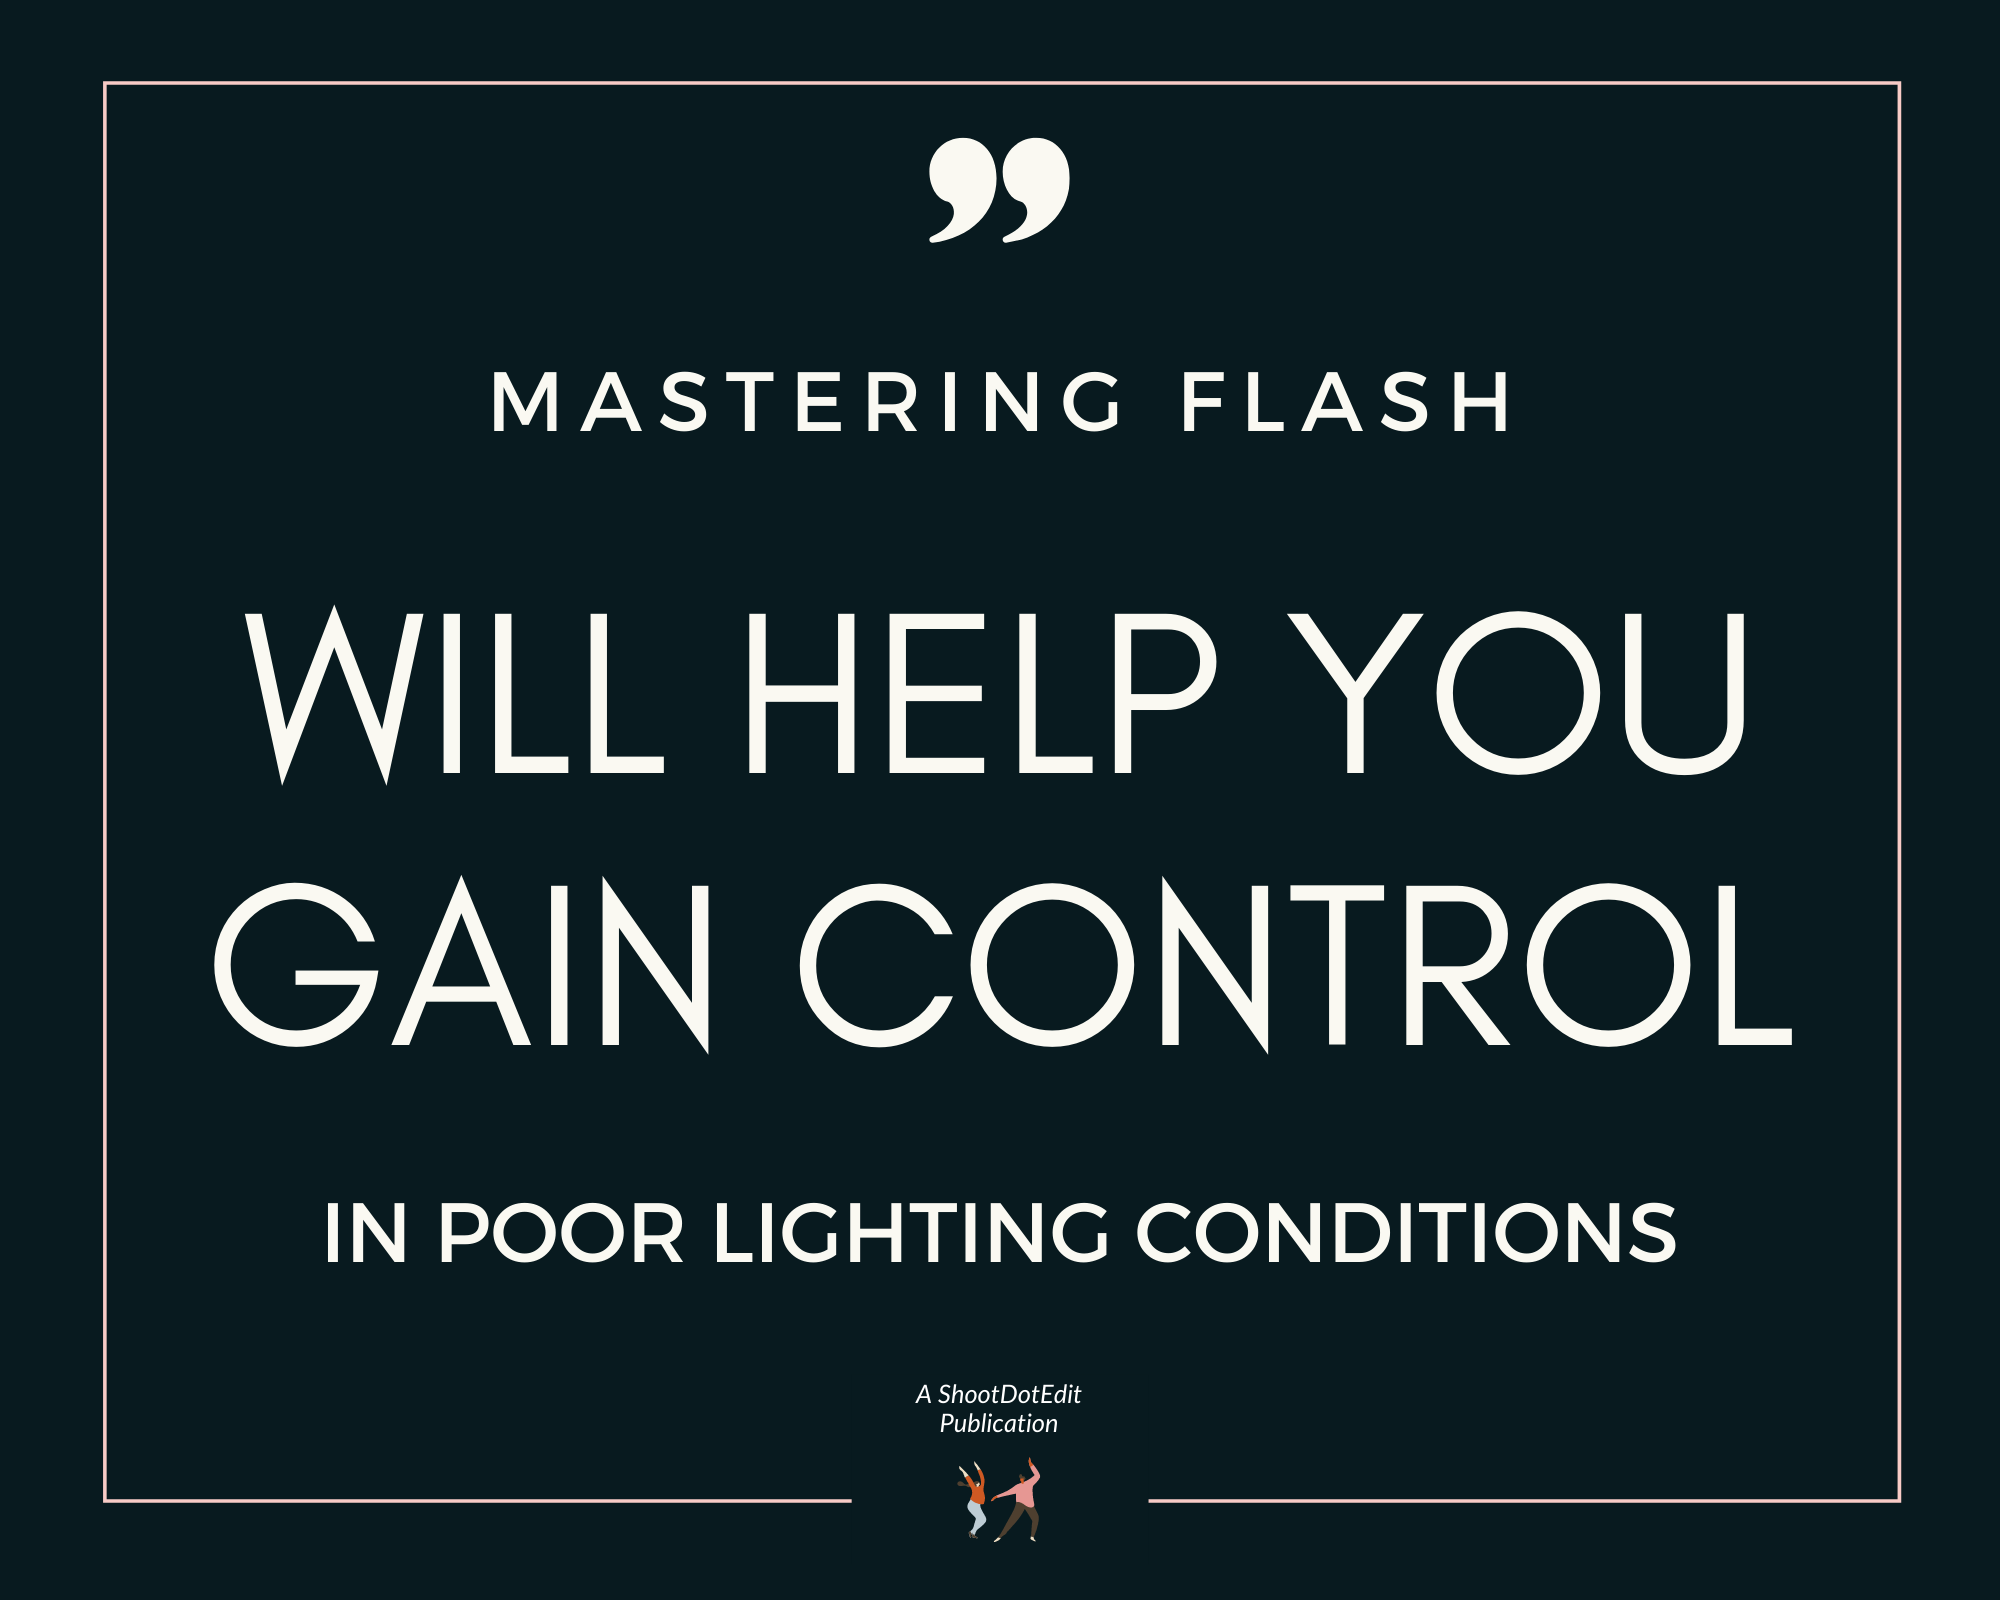 Infographic stating mastering flash will help you gain control in poor lighting conditions